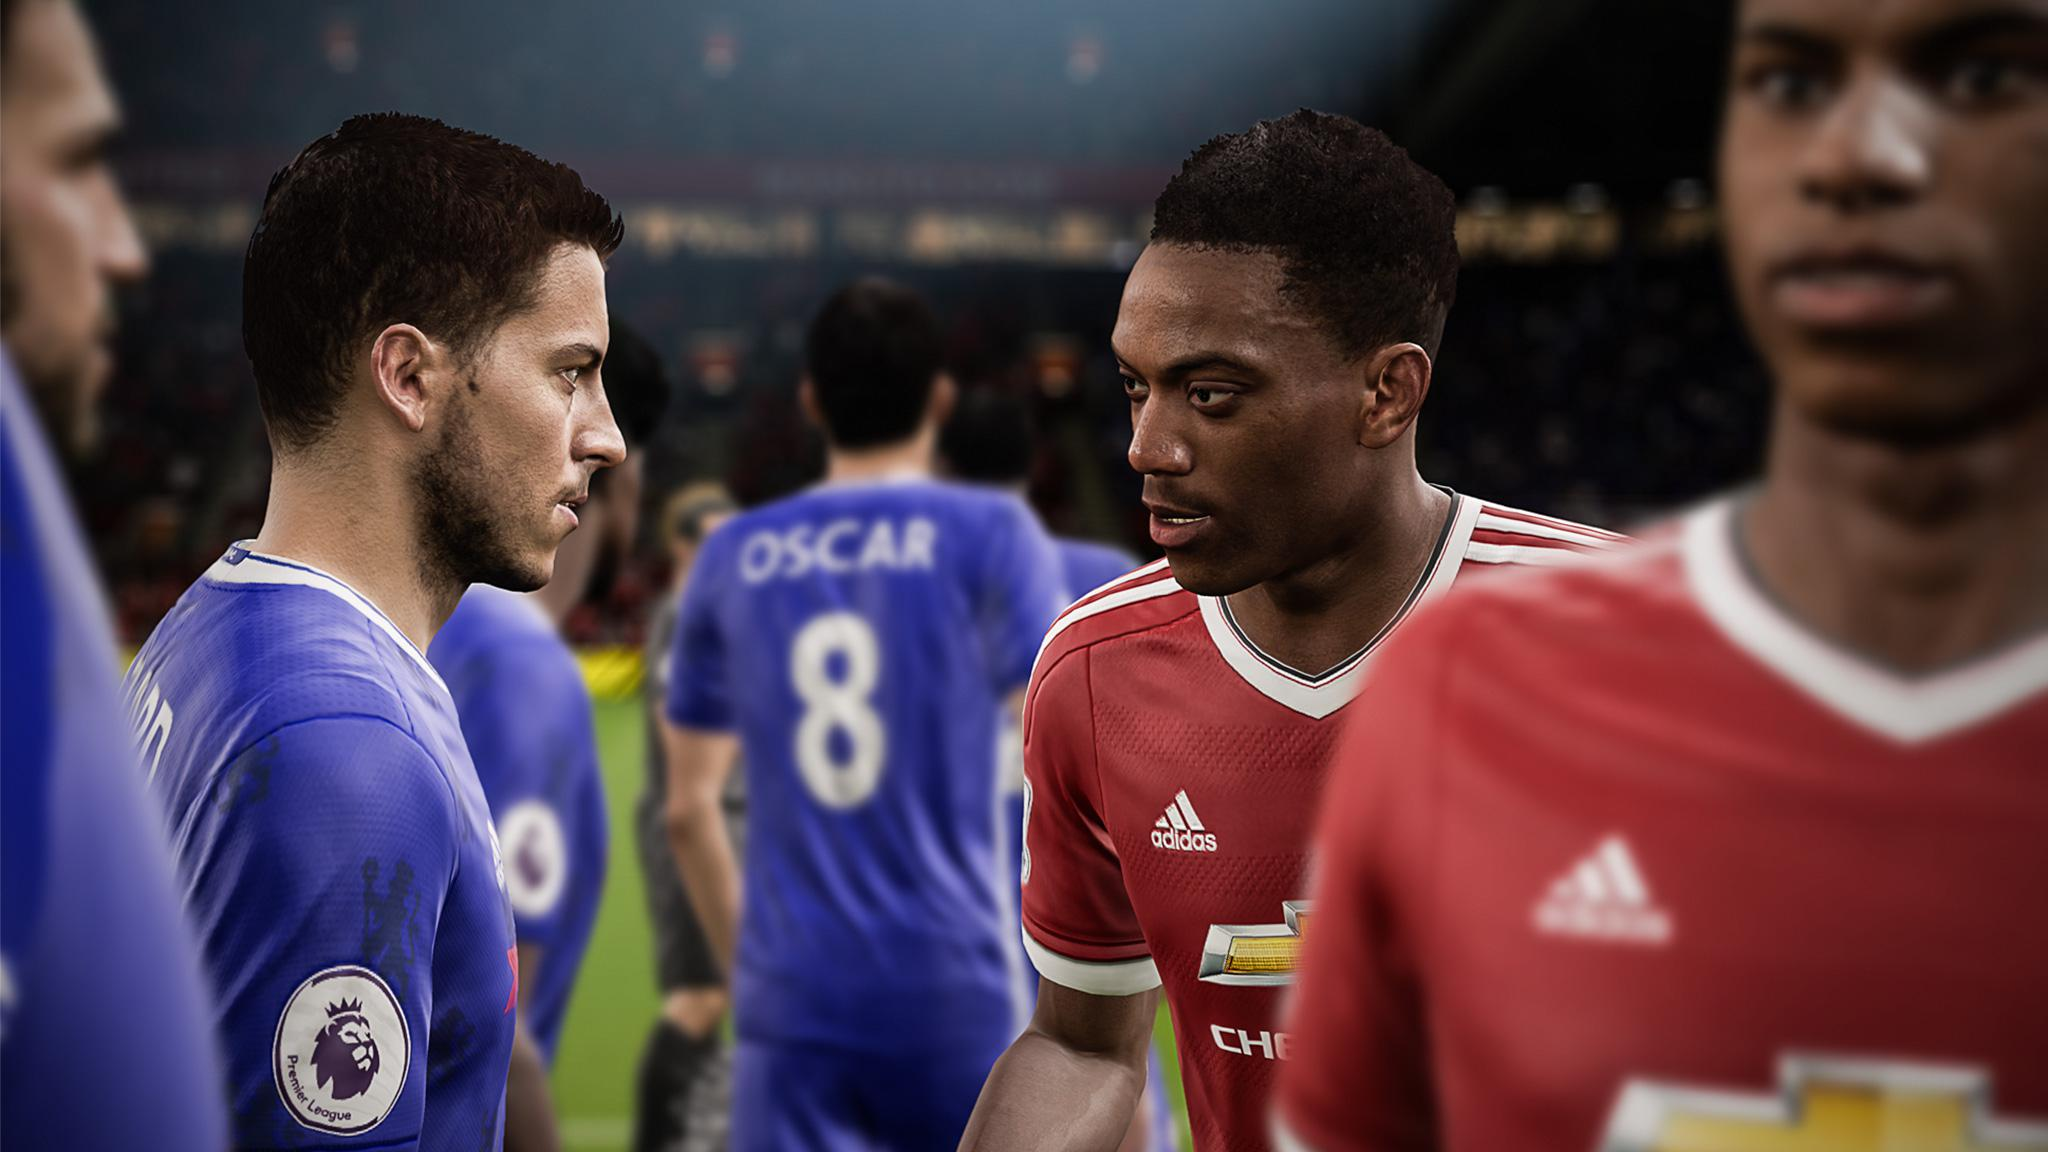 FIFA 17 looked the part, but the Frostbite Engine is capable of so much more